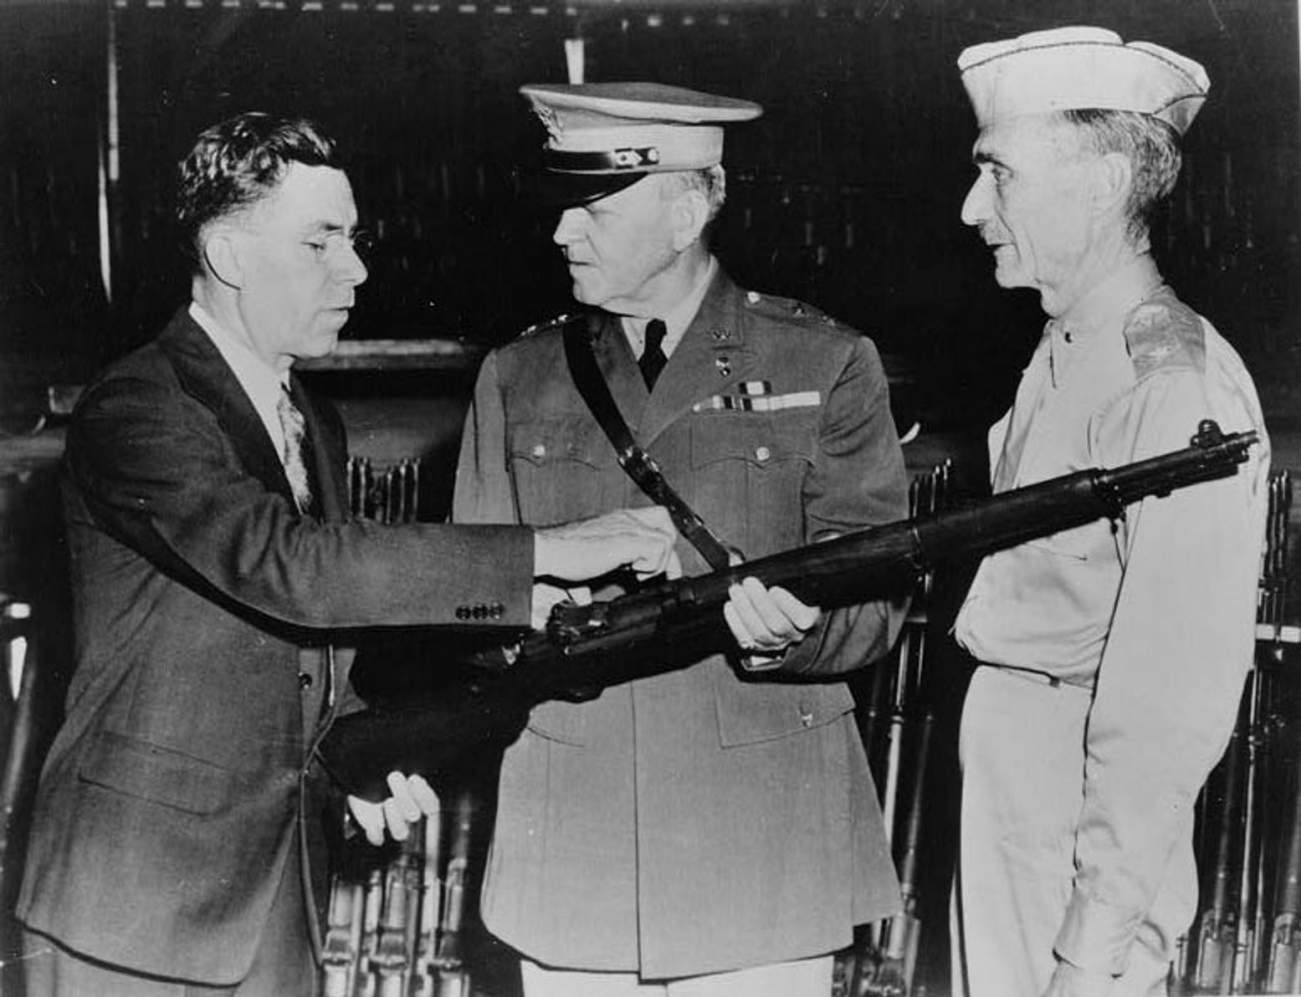 The Superiority of the M-1 Garand Rifle Is Not To Be Questioned